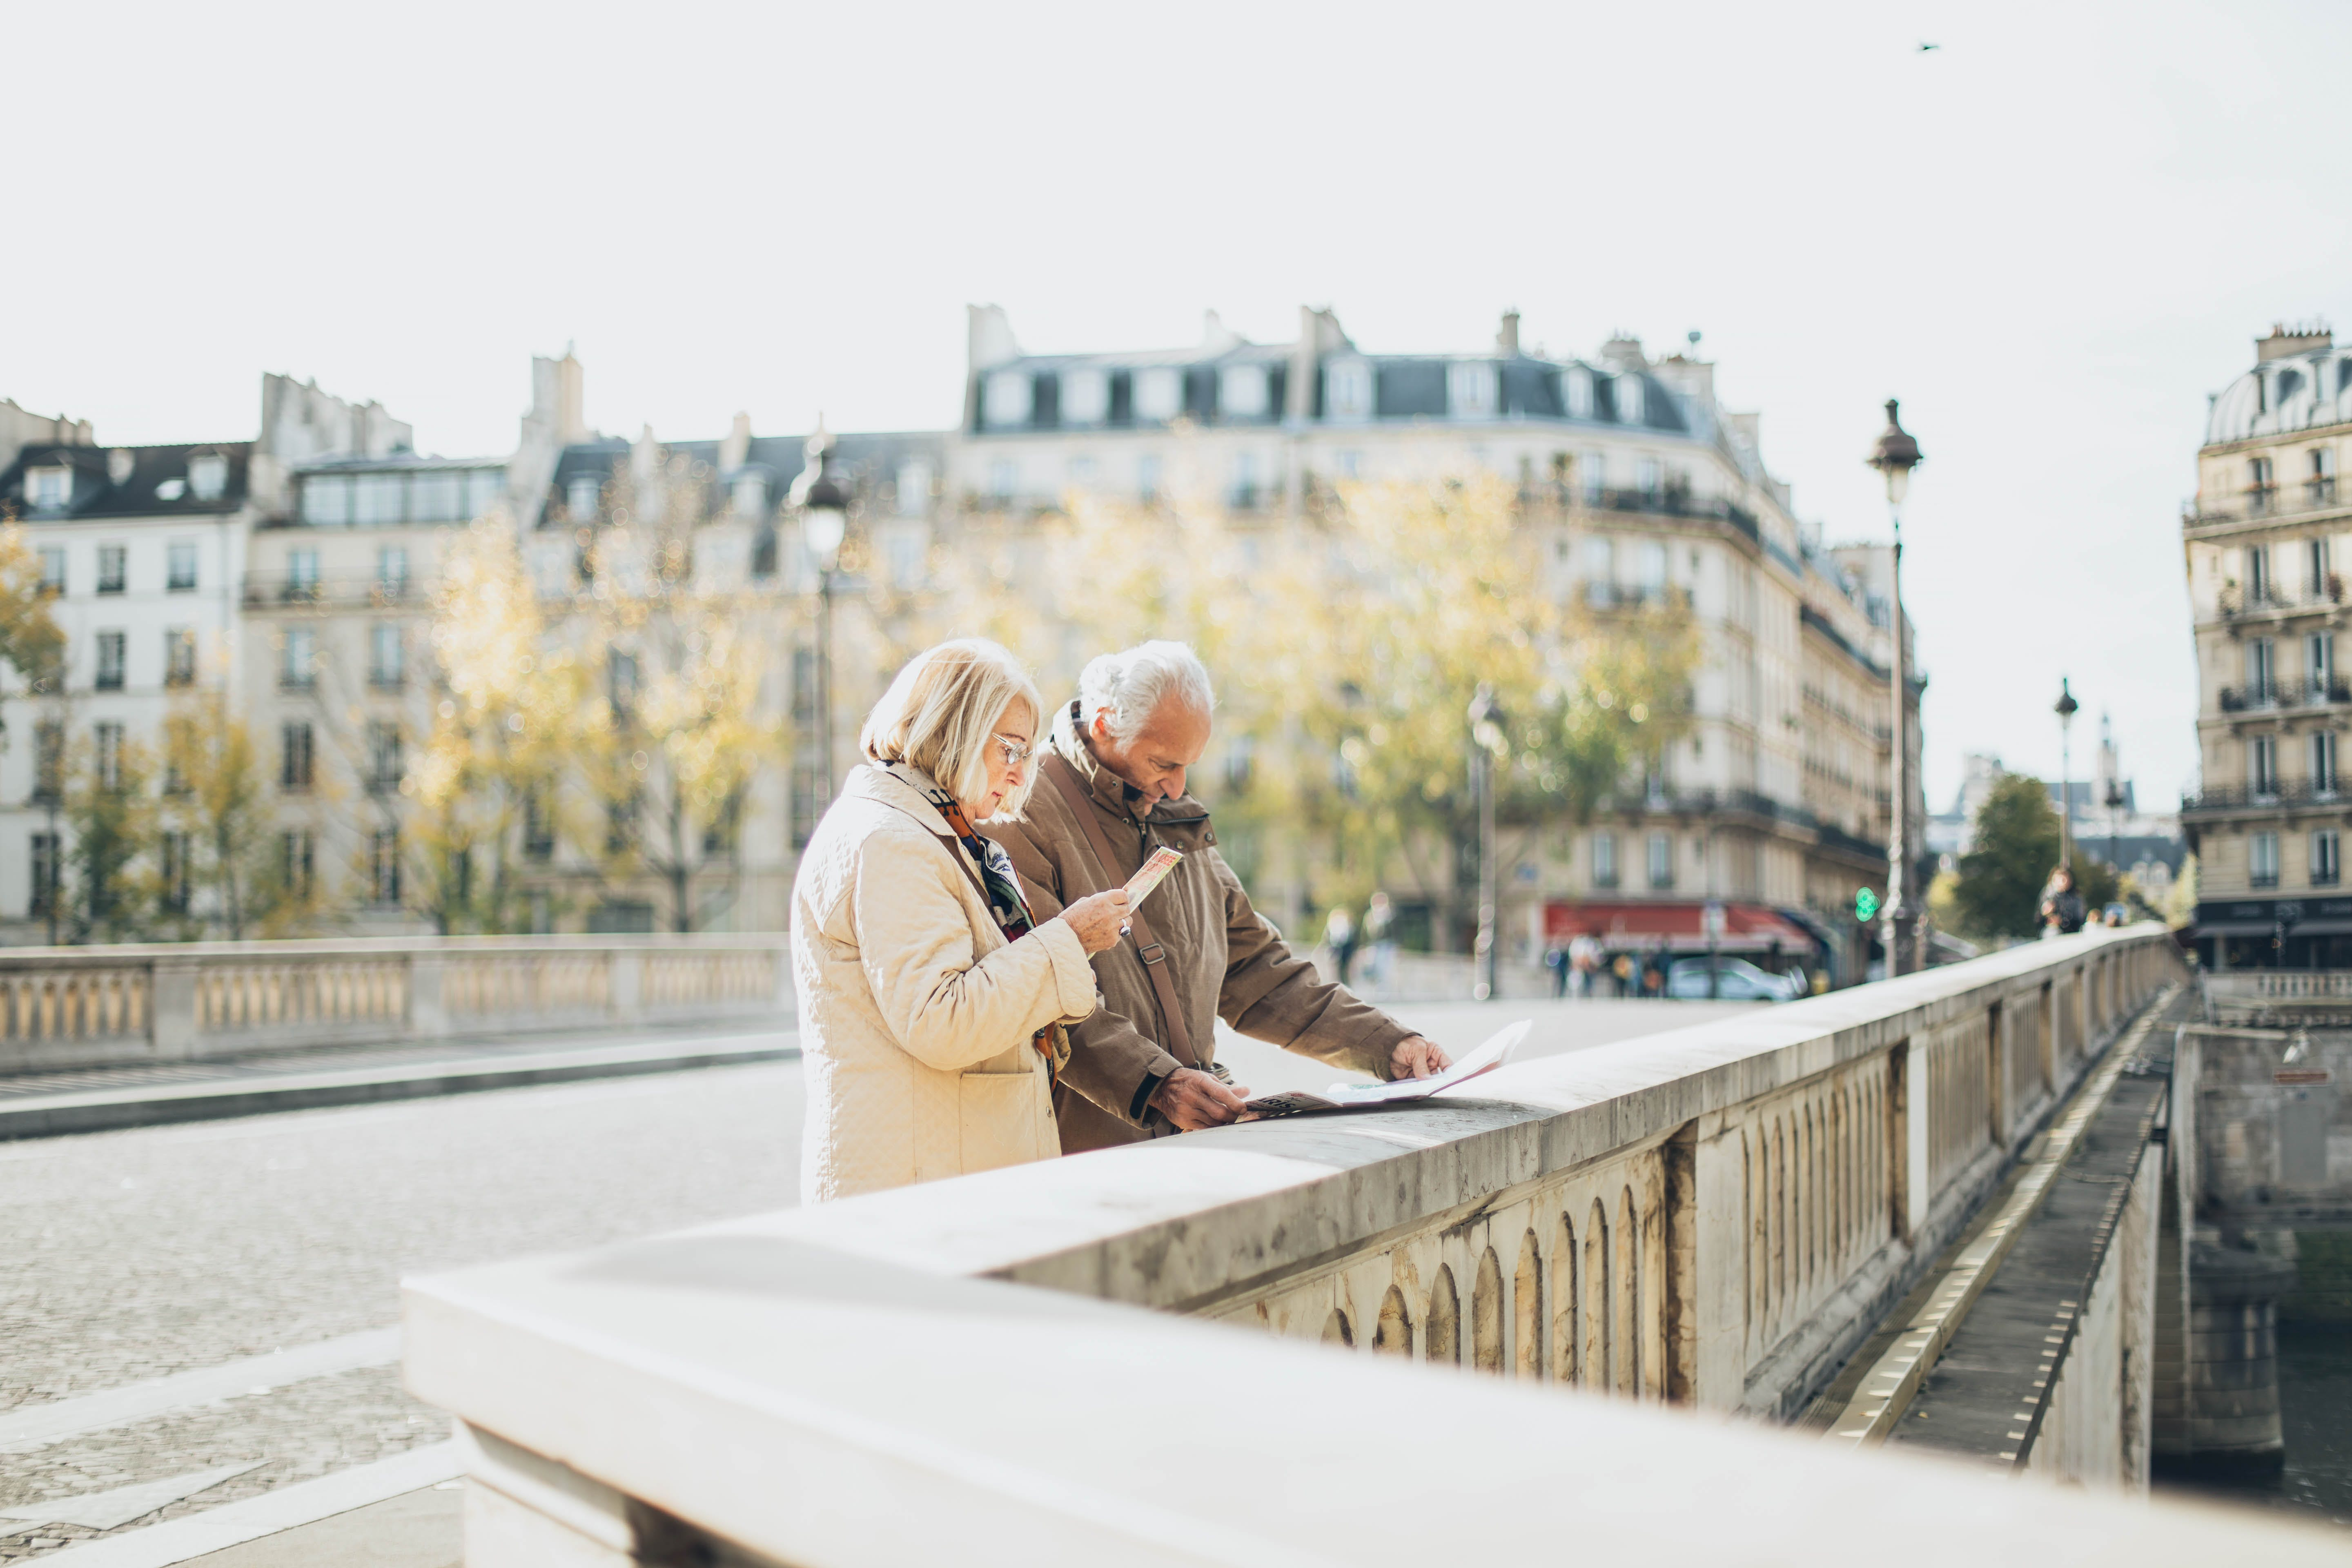 Man and Woman Standing Near the Road While Reading